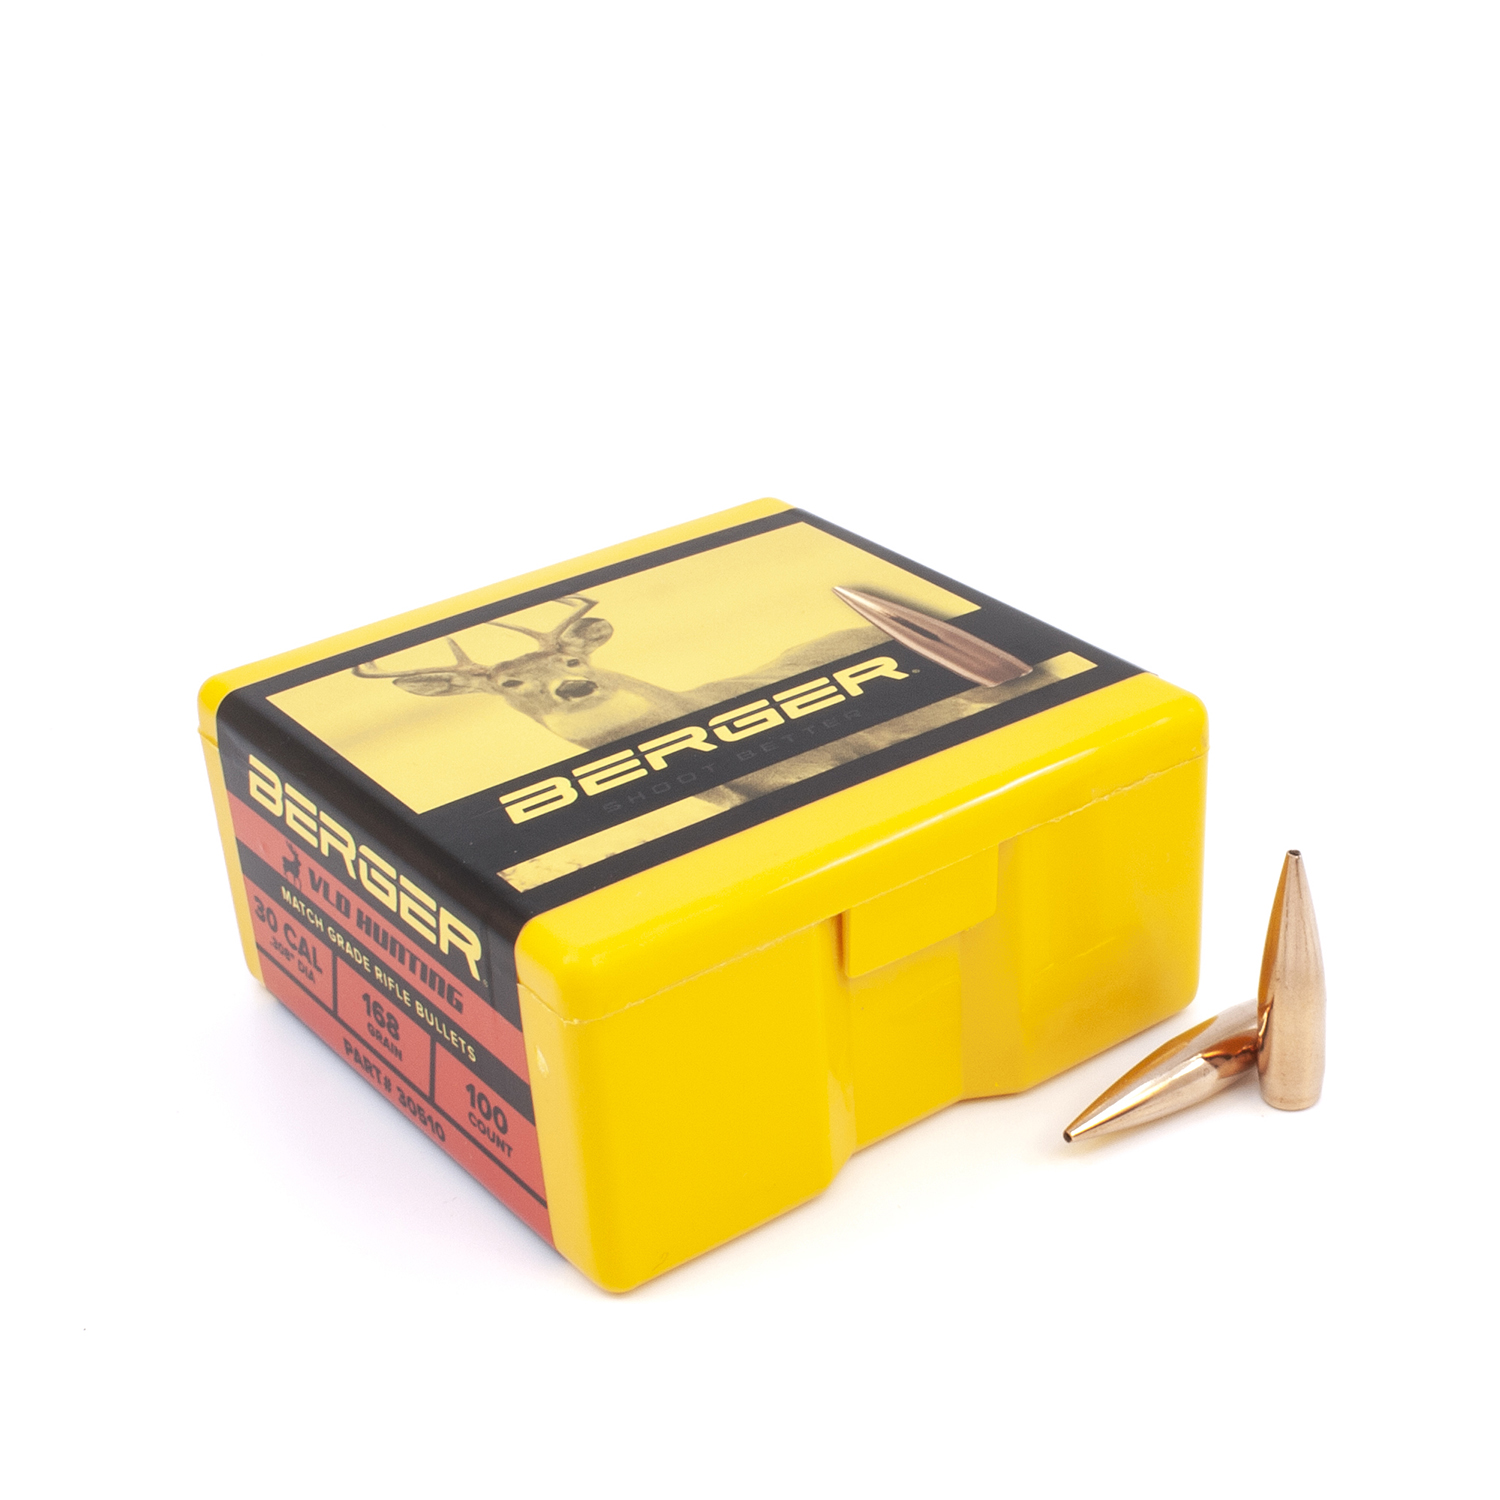 Berger Bullets - .30 cal, 168 gr. VLD Hunting - Box of 100